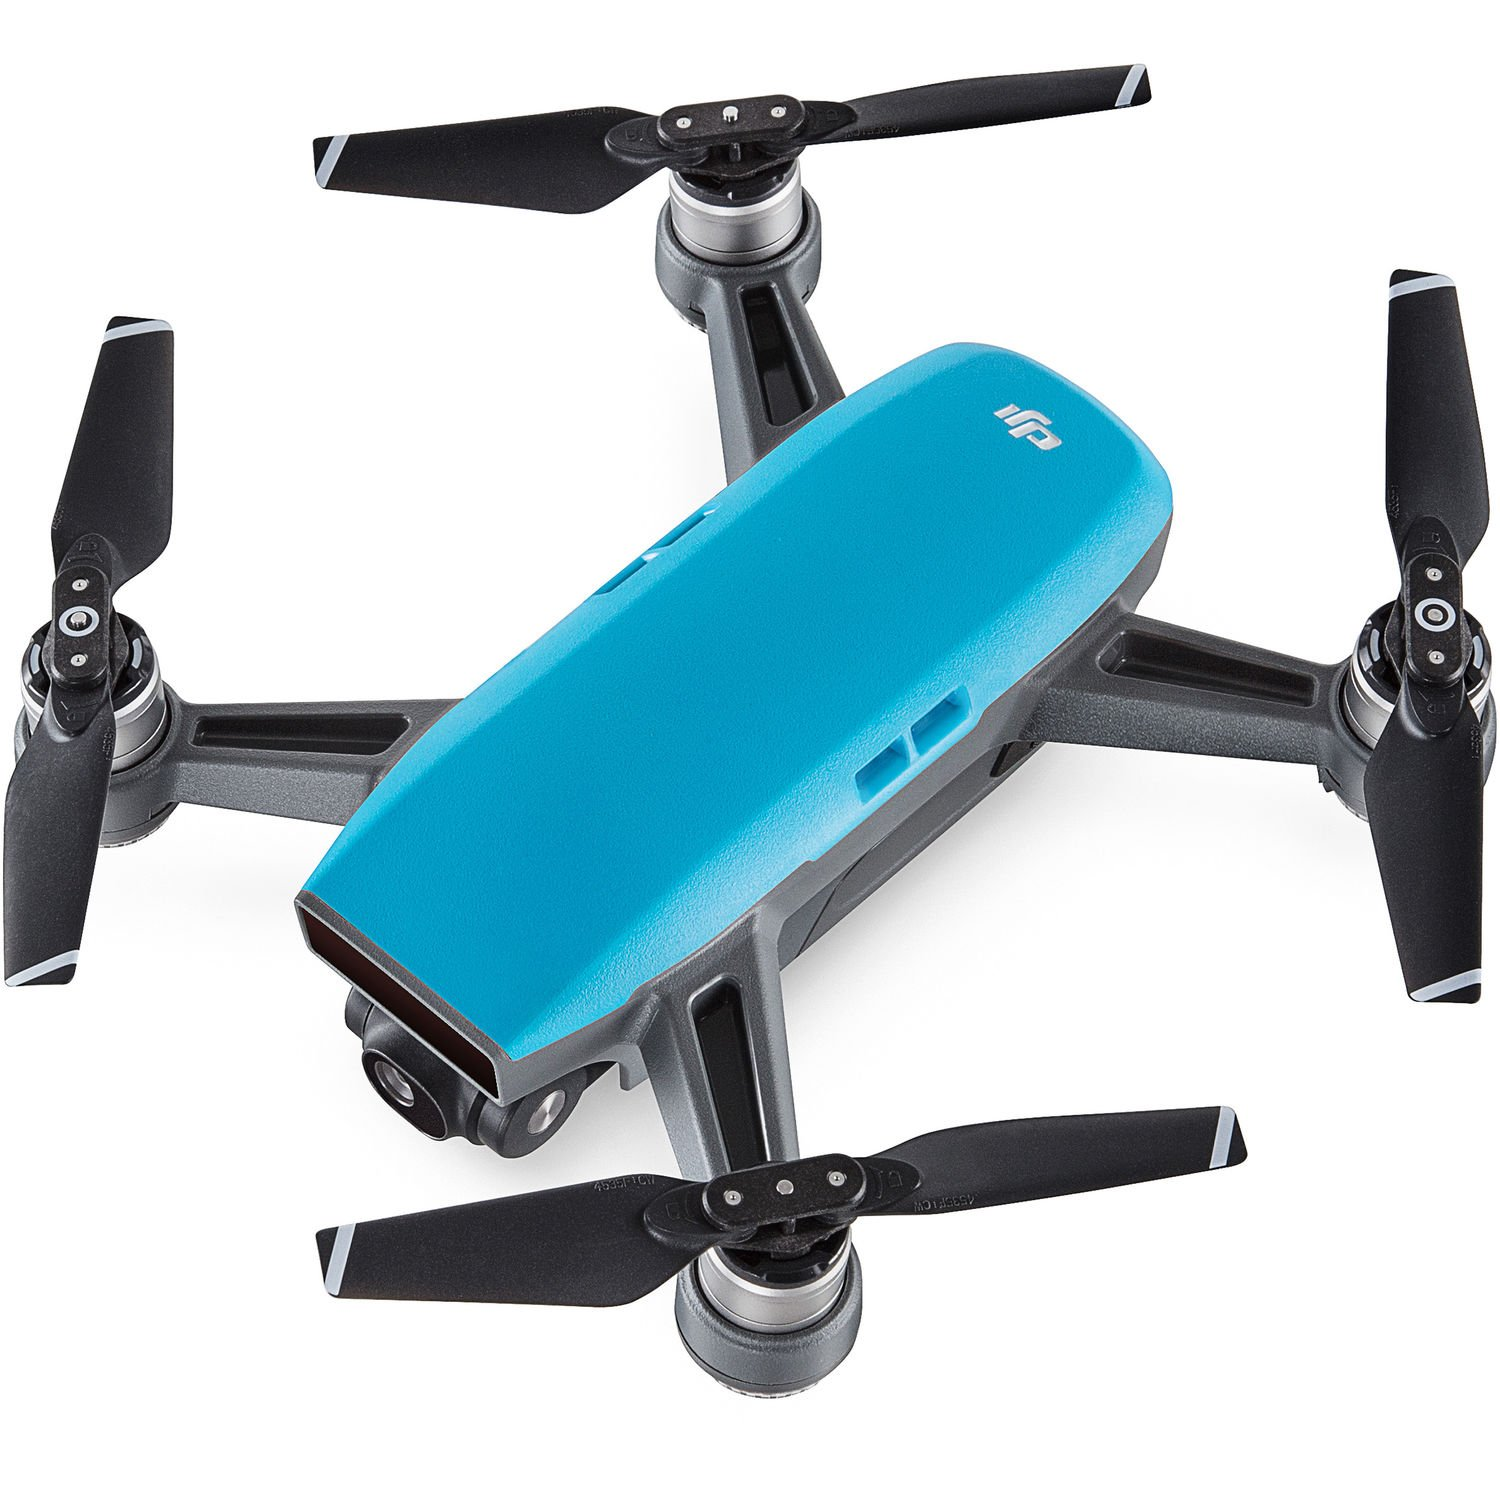 DJI SPARK Fly More Combo - Sky Blue version